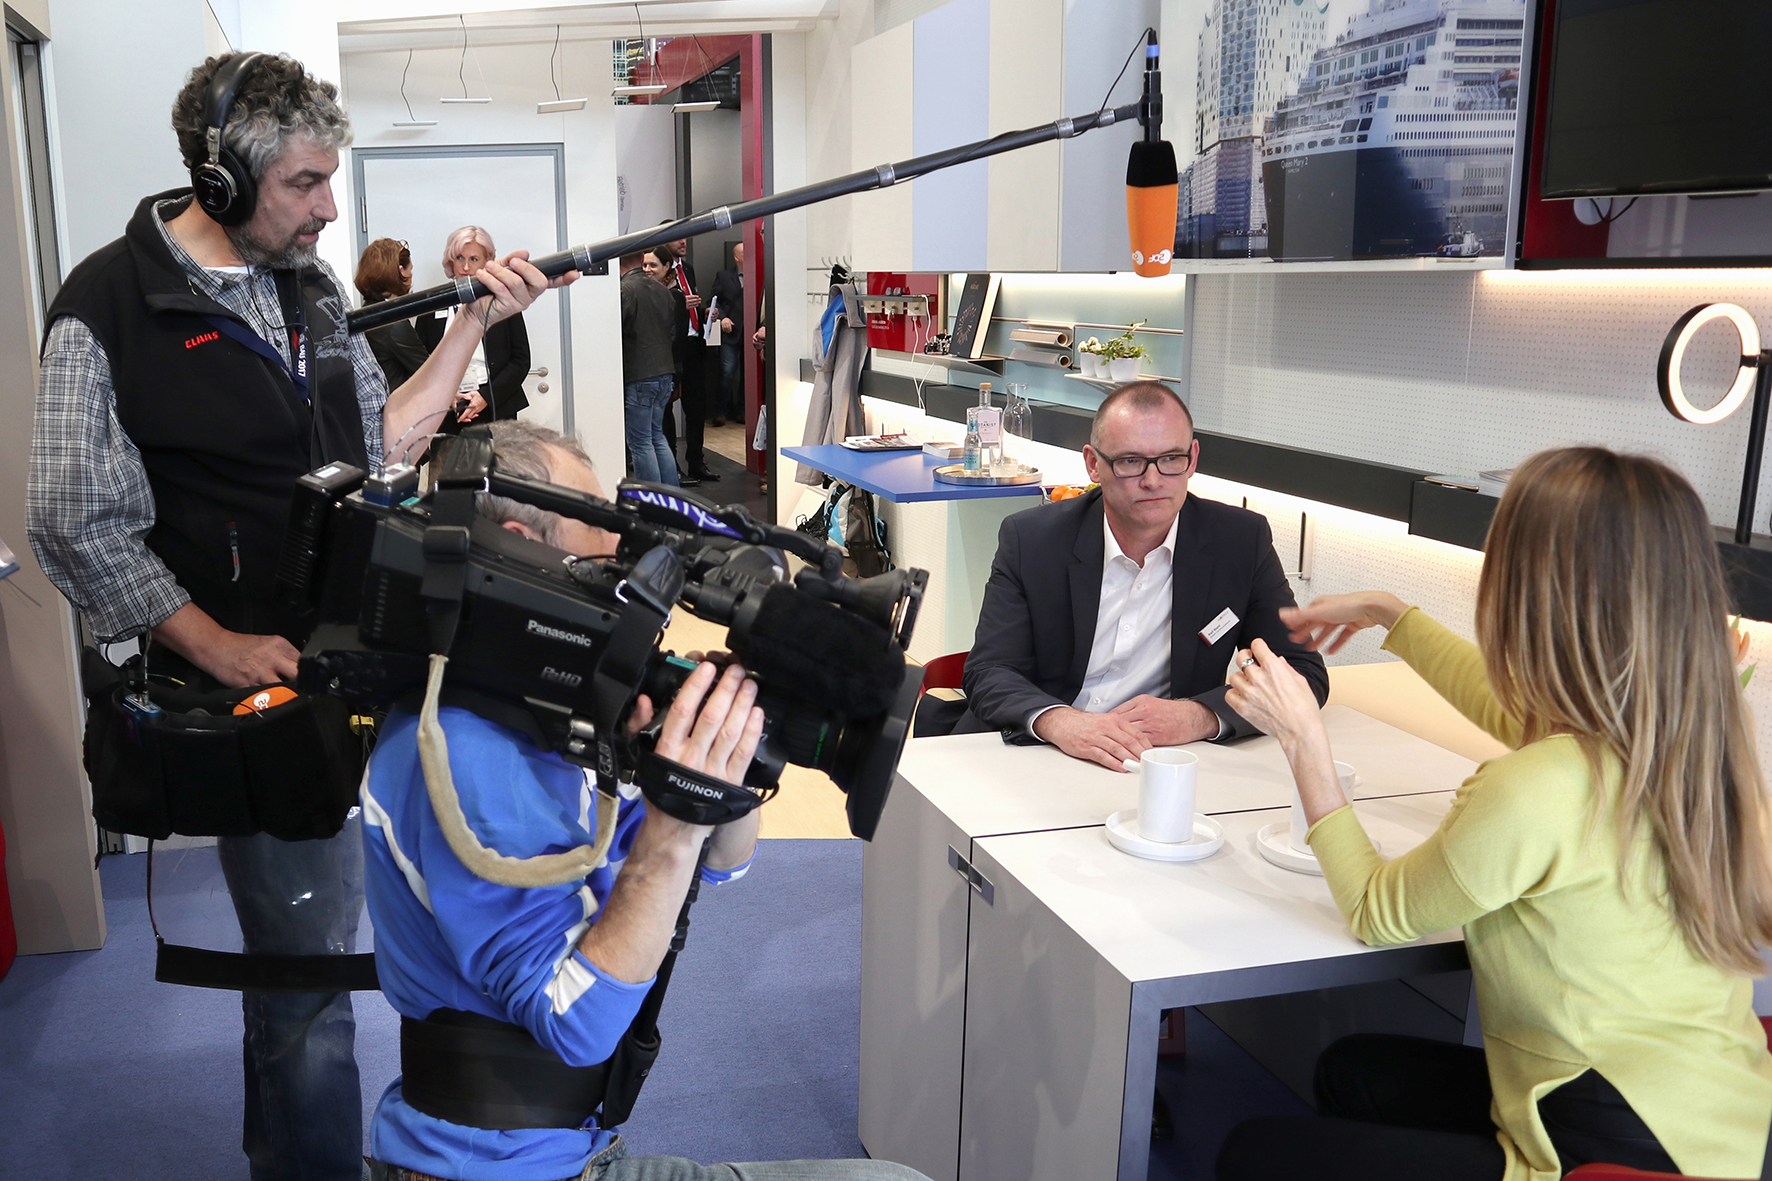 As seen on TV – the MicroApart 20/30 by Häfele. Patricia Schäfer, presenter of the German TV station ZDF's morning news show, is seen interviewing Ralf Biehl from Häfele brand communications.